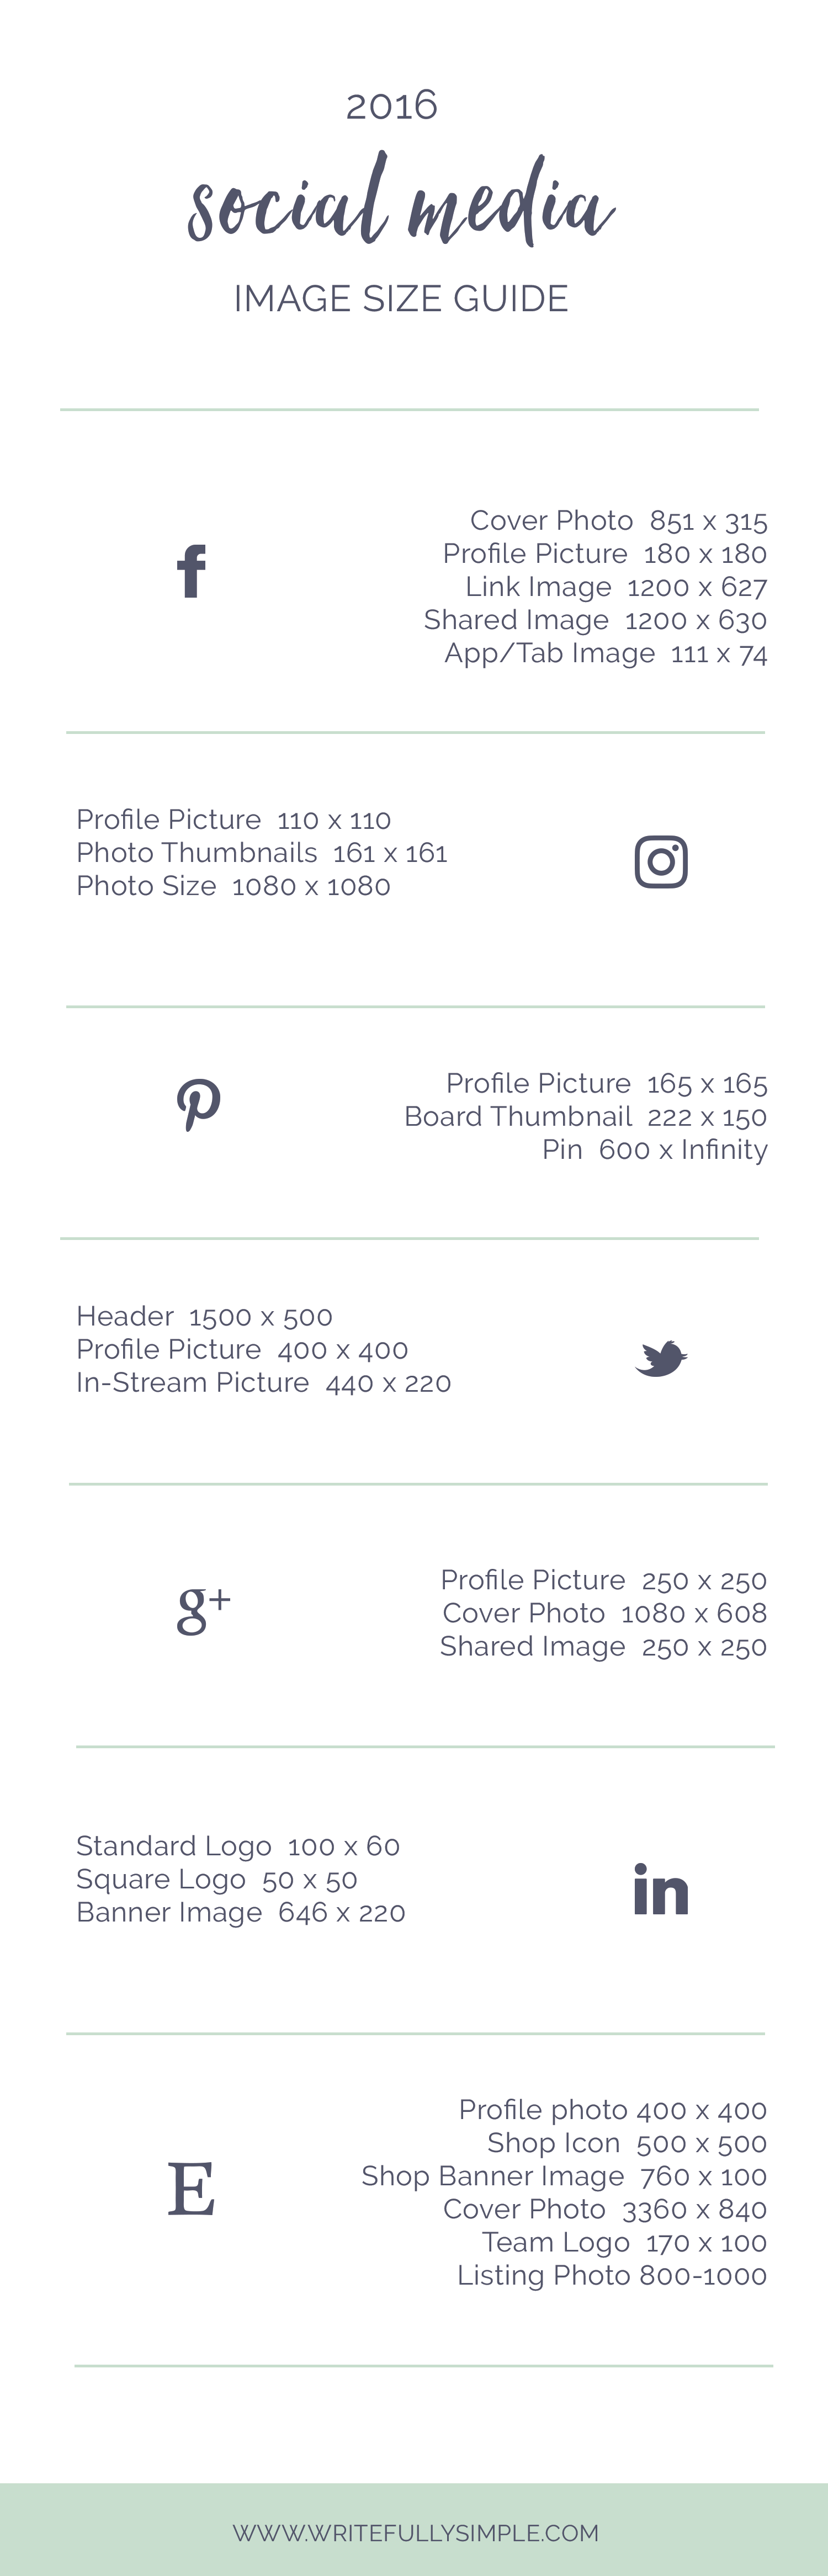 Social Media Image Size Guide | Writefully Simple | Eau Claire, Wisconsin | www.writefullysimple.com